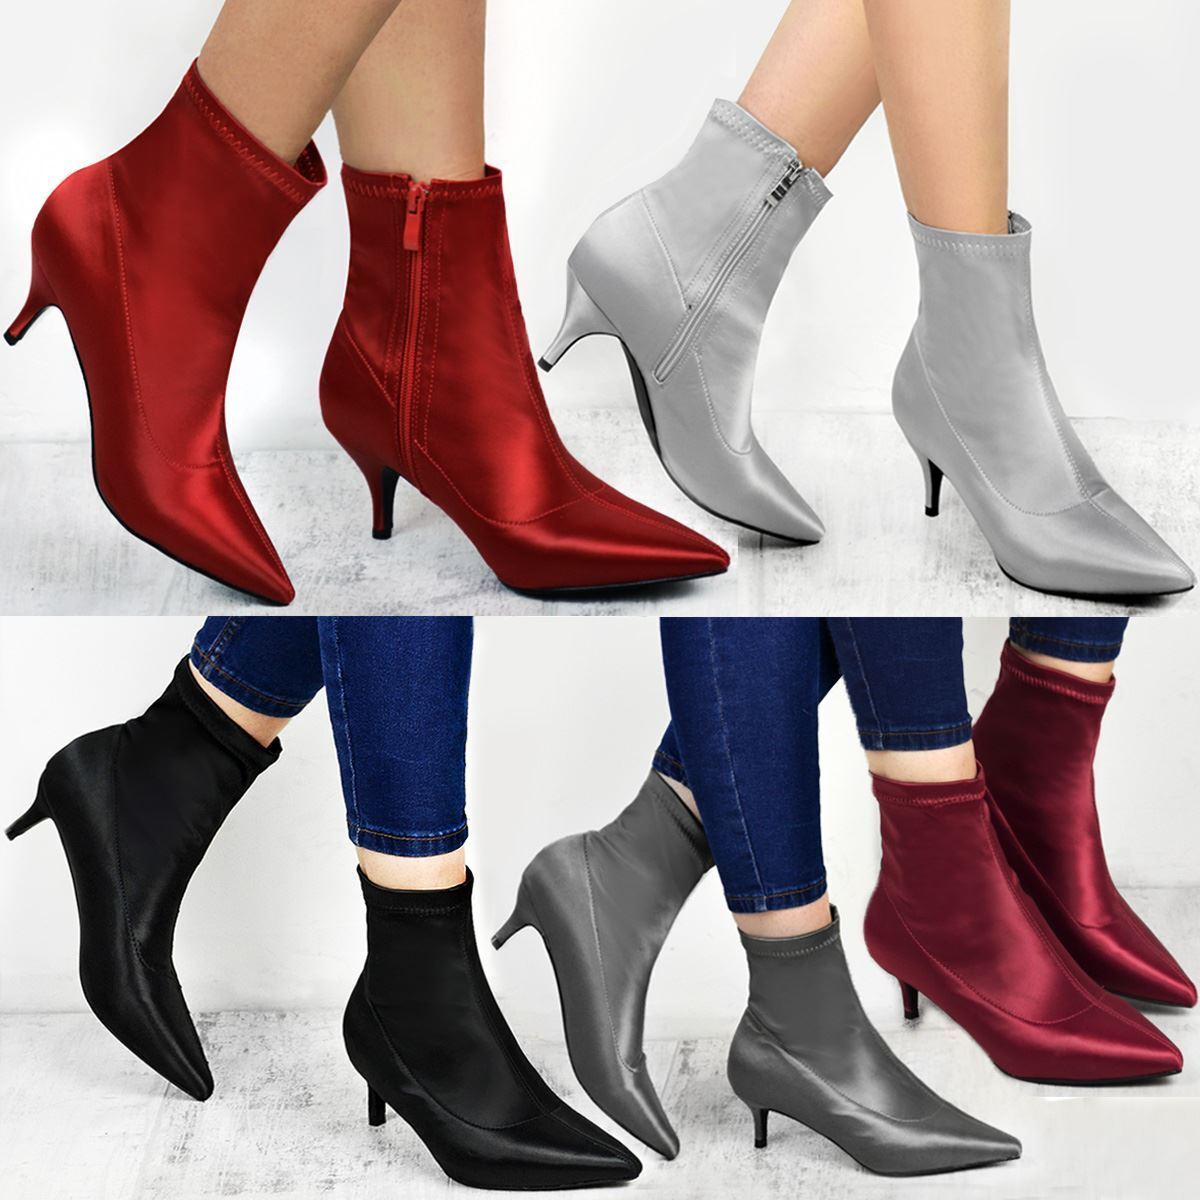 Gentleman/Lady Ladies Womens Low Kitten Heel Ankle Toe Boots Stretch Satin Pointed Toe Ankle Shoes Size Outstanding features Trendy At an affordable price WG3399 f6b337